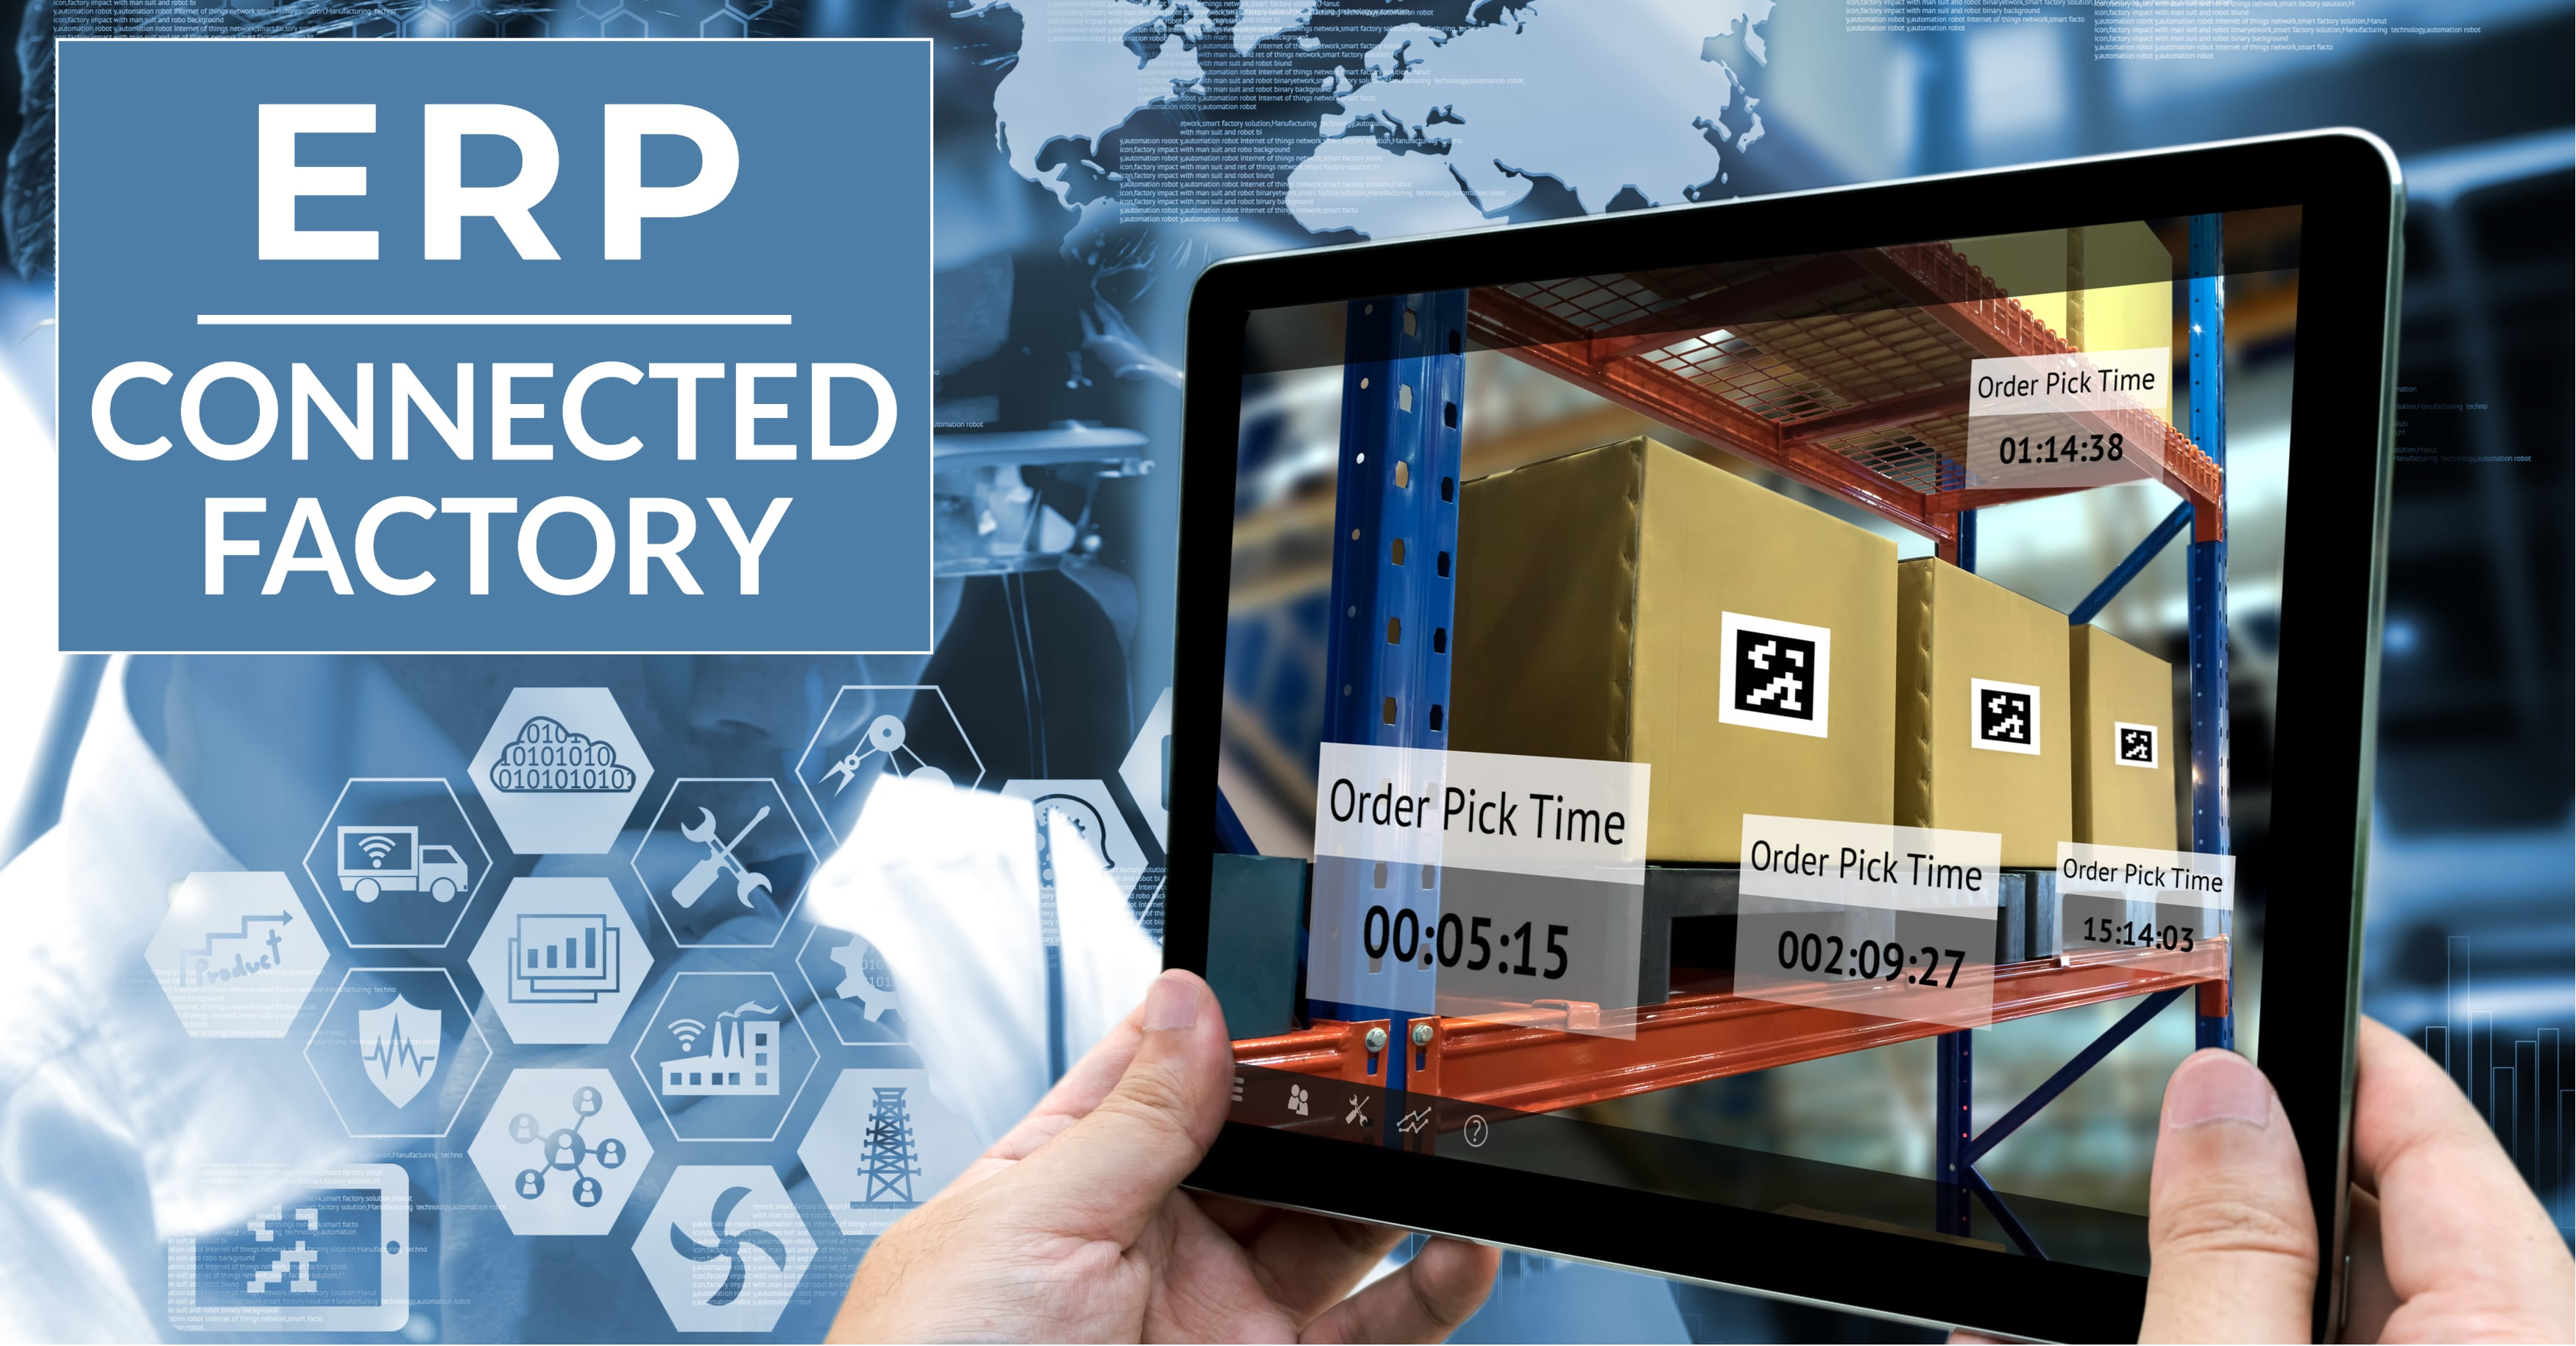 How Can ERP Help You Develop a Connected Factory?